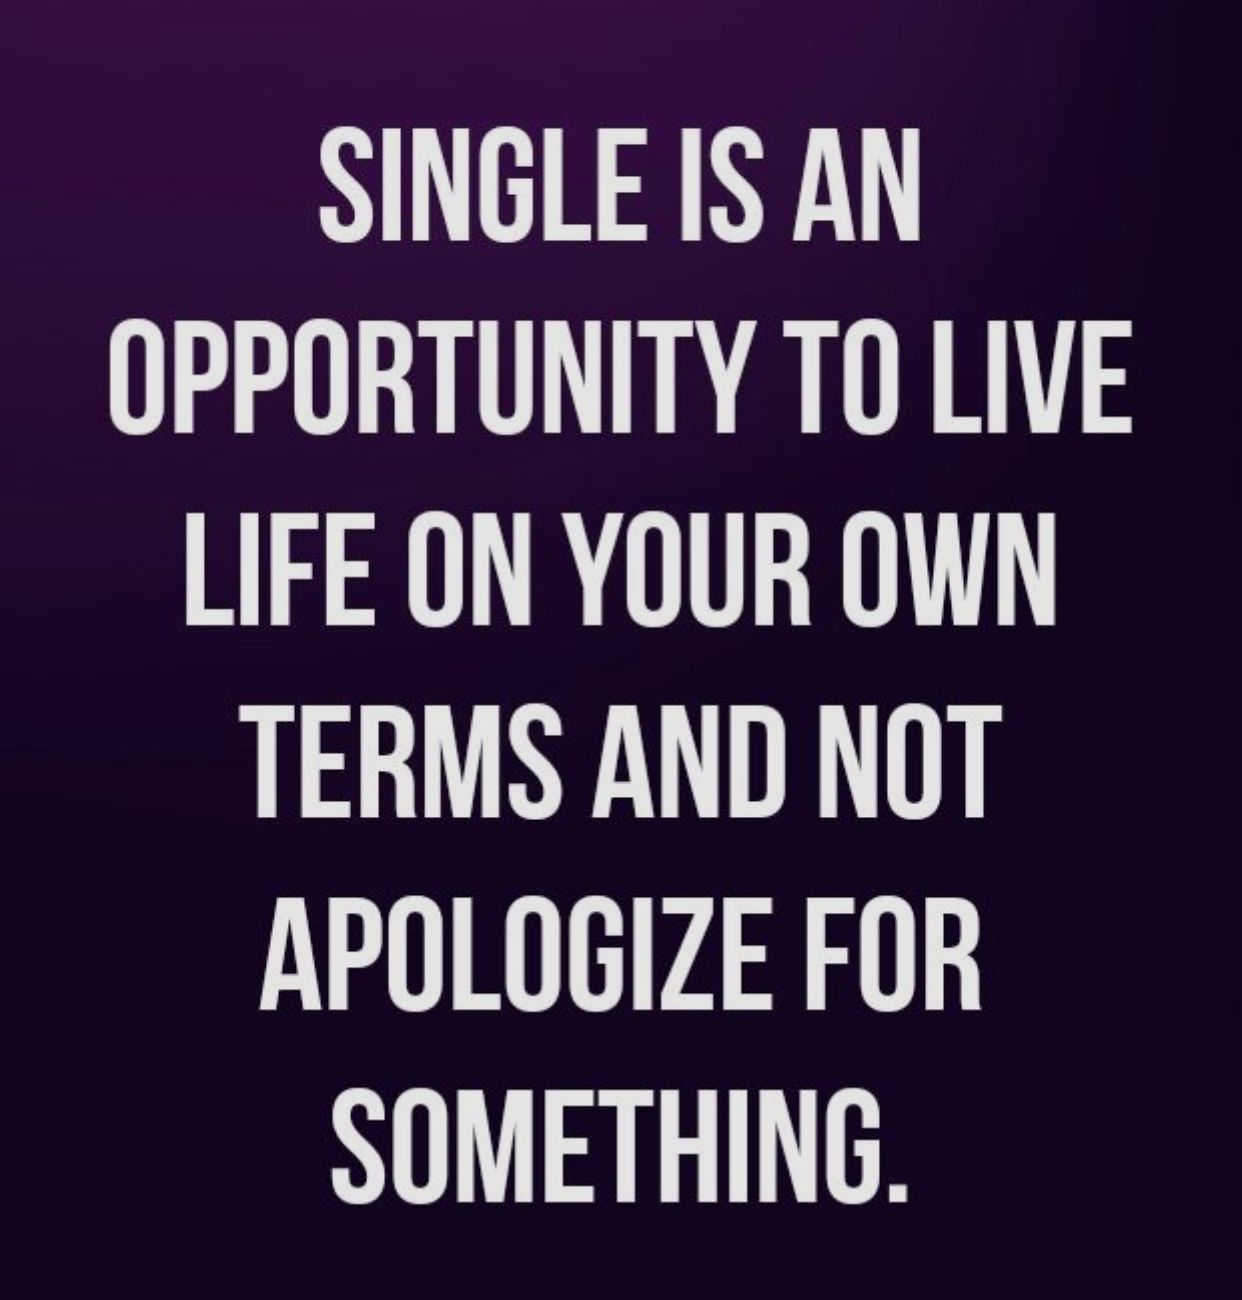 Pin By Jeff Ogle On Amazing Quotes Single Life Quotes Single Women Quotes Empowering Quotes